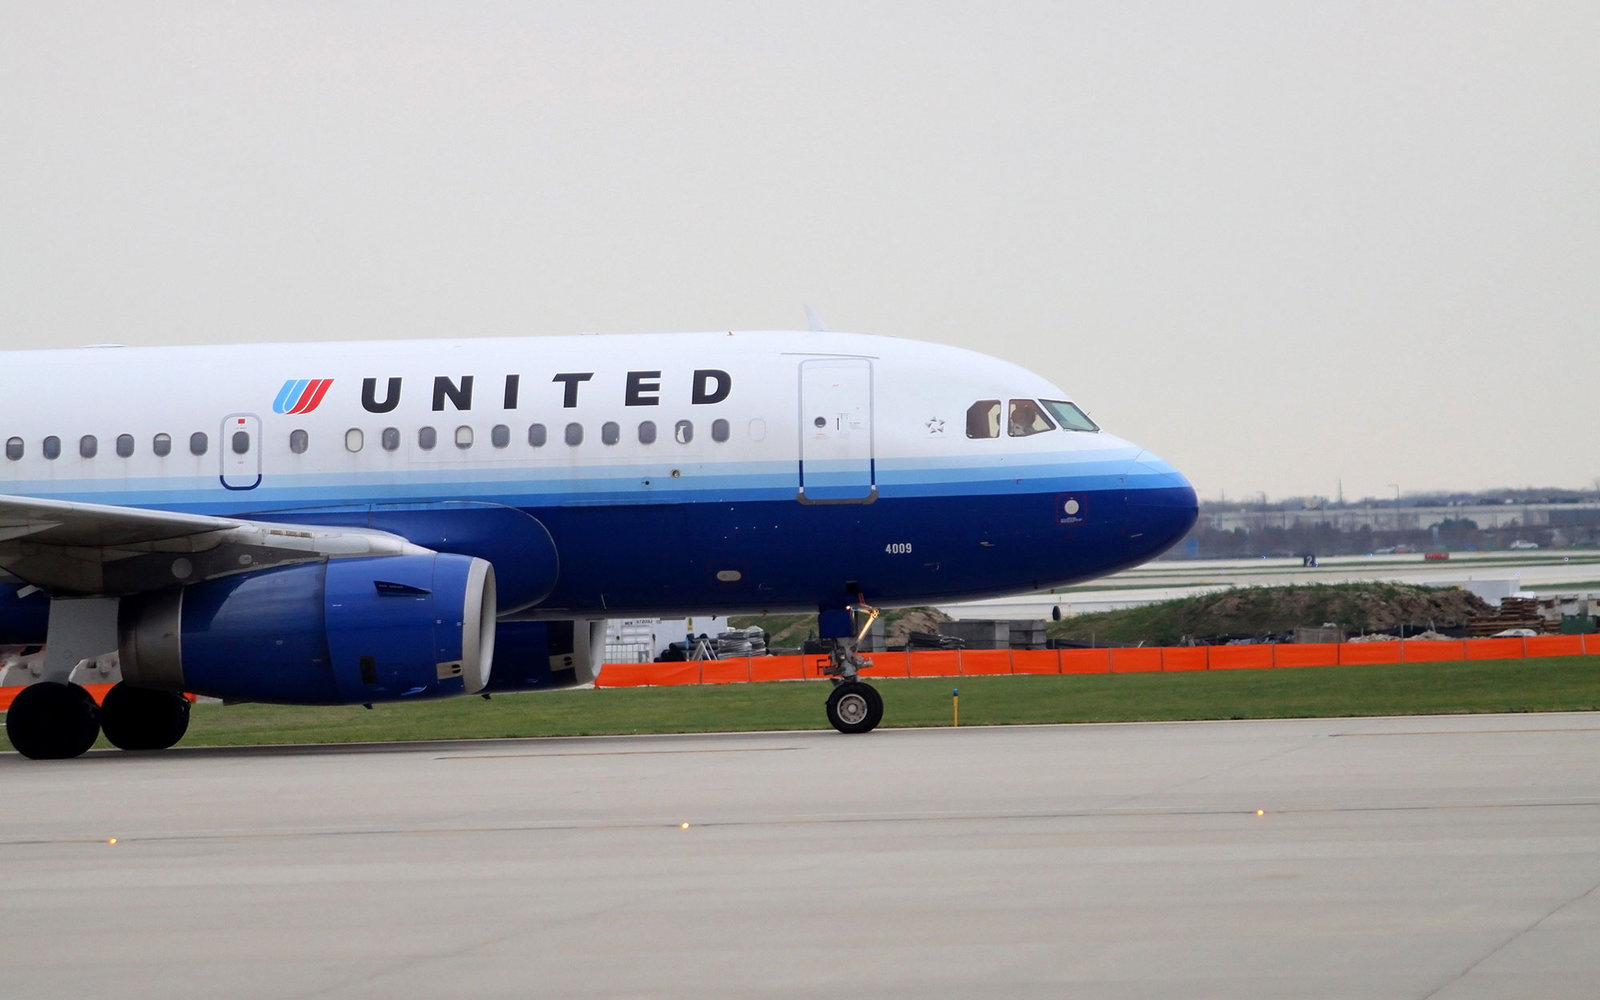 CHICAGO - OCTOBER 25:  A United Airlines airplane, taxis up the runway to prepare for takeoff at O'Hare International Airport in Chicago, Illinois on OCTOBER 25, 2012.  (Photo By Raymond Boyd/Michael Ochs Archives/Getty Images)